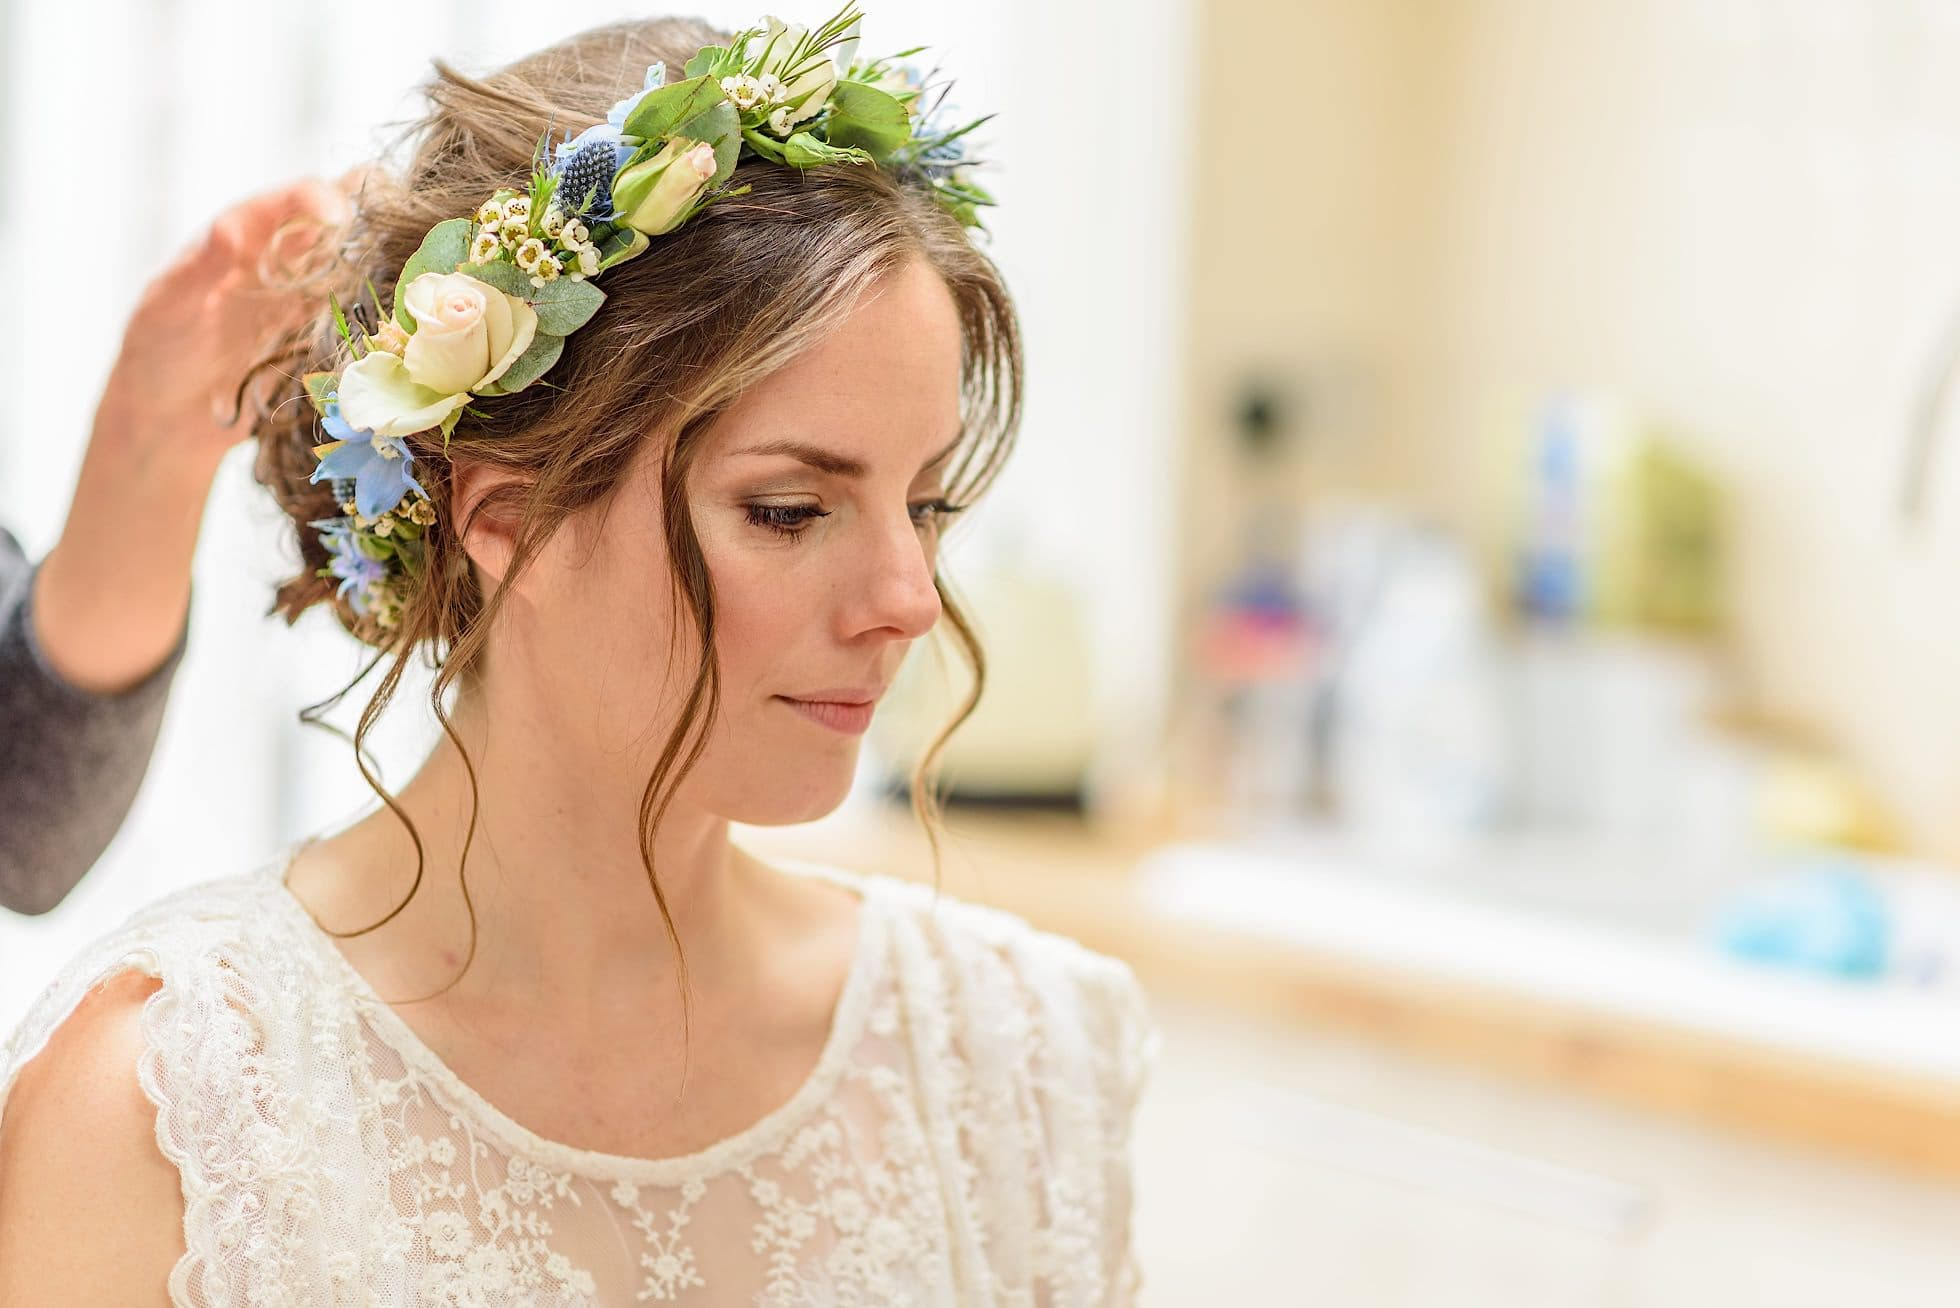 Bride looking amazing with flower head dress